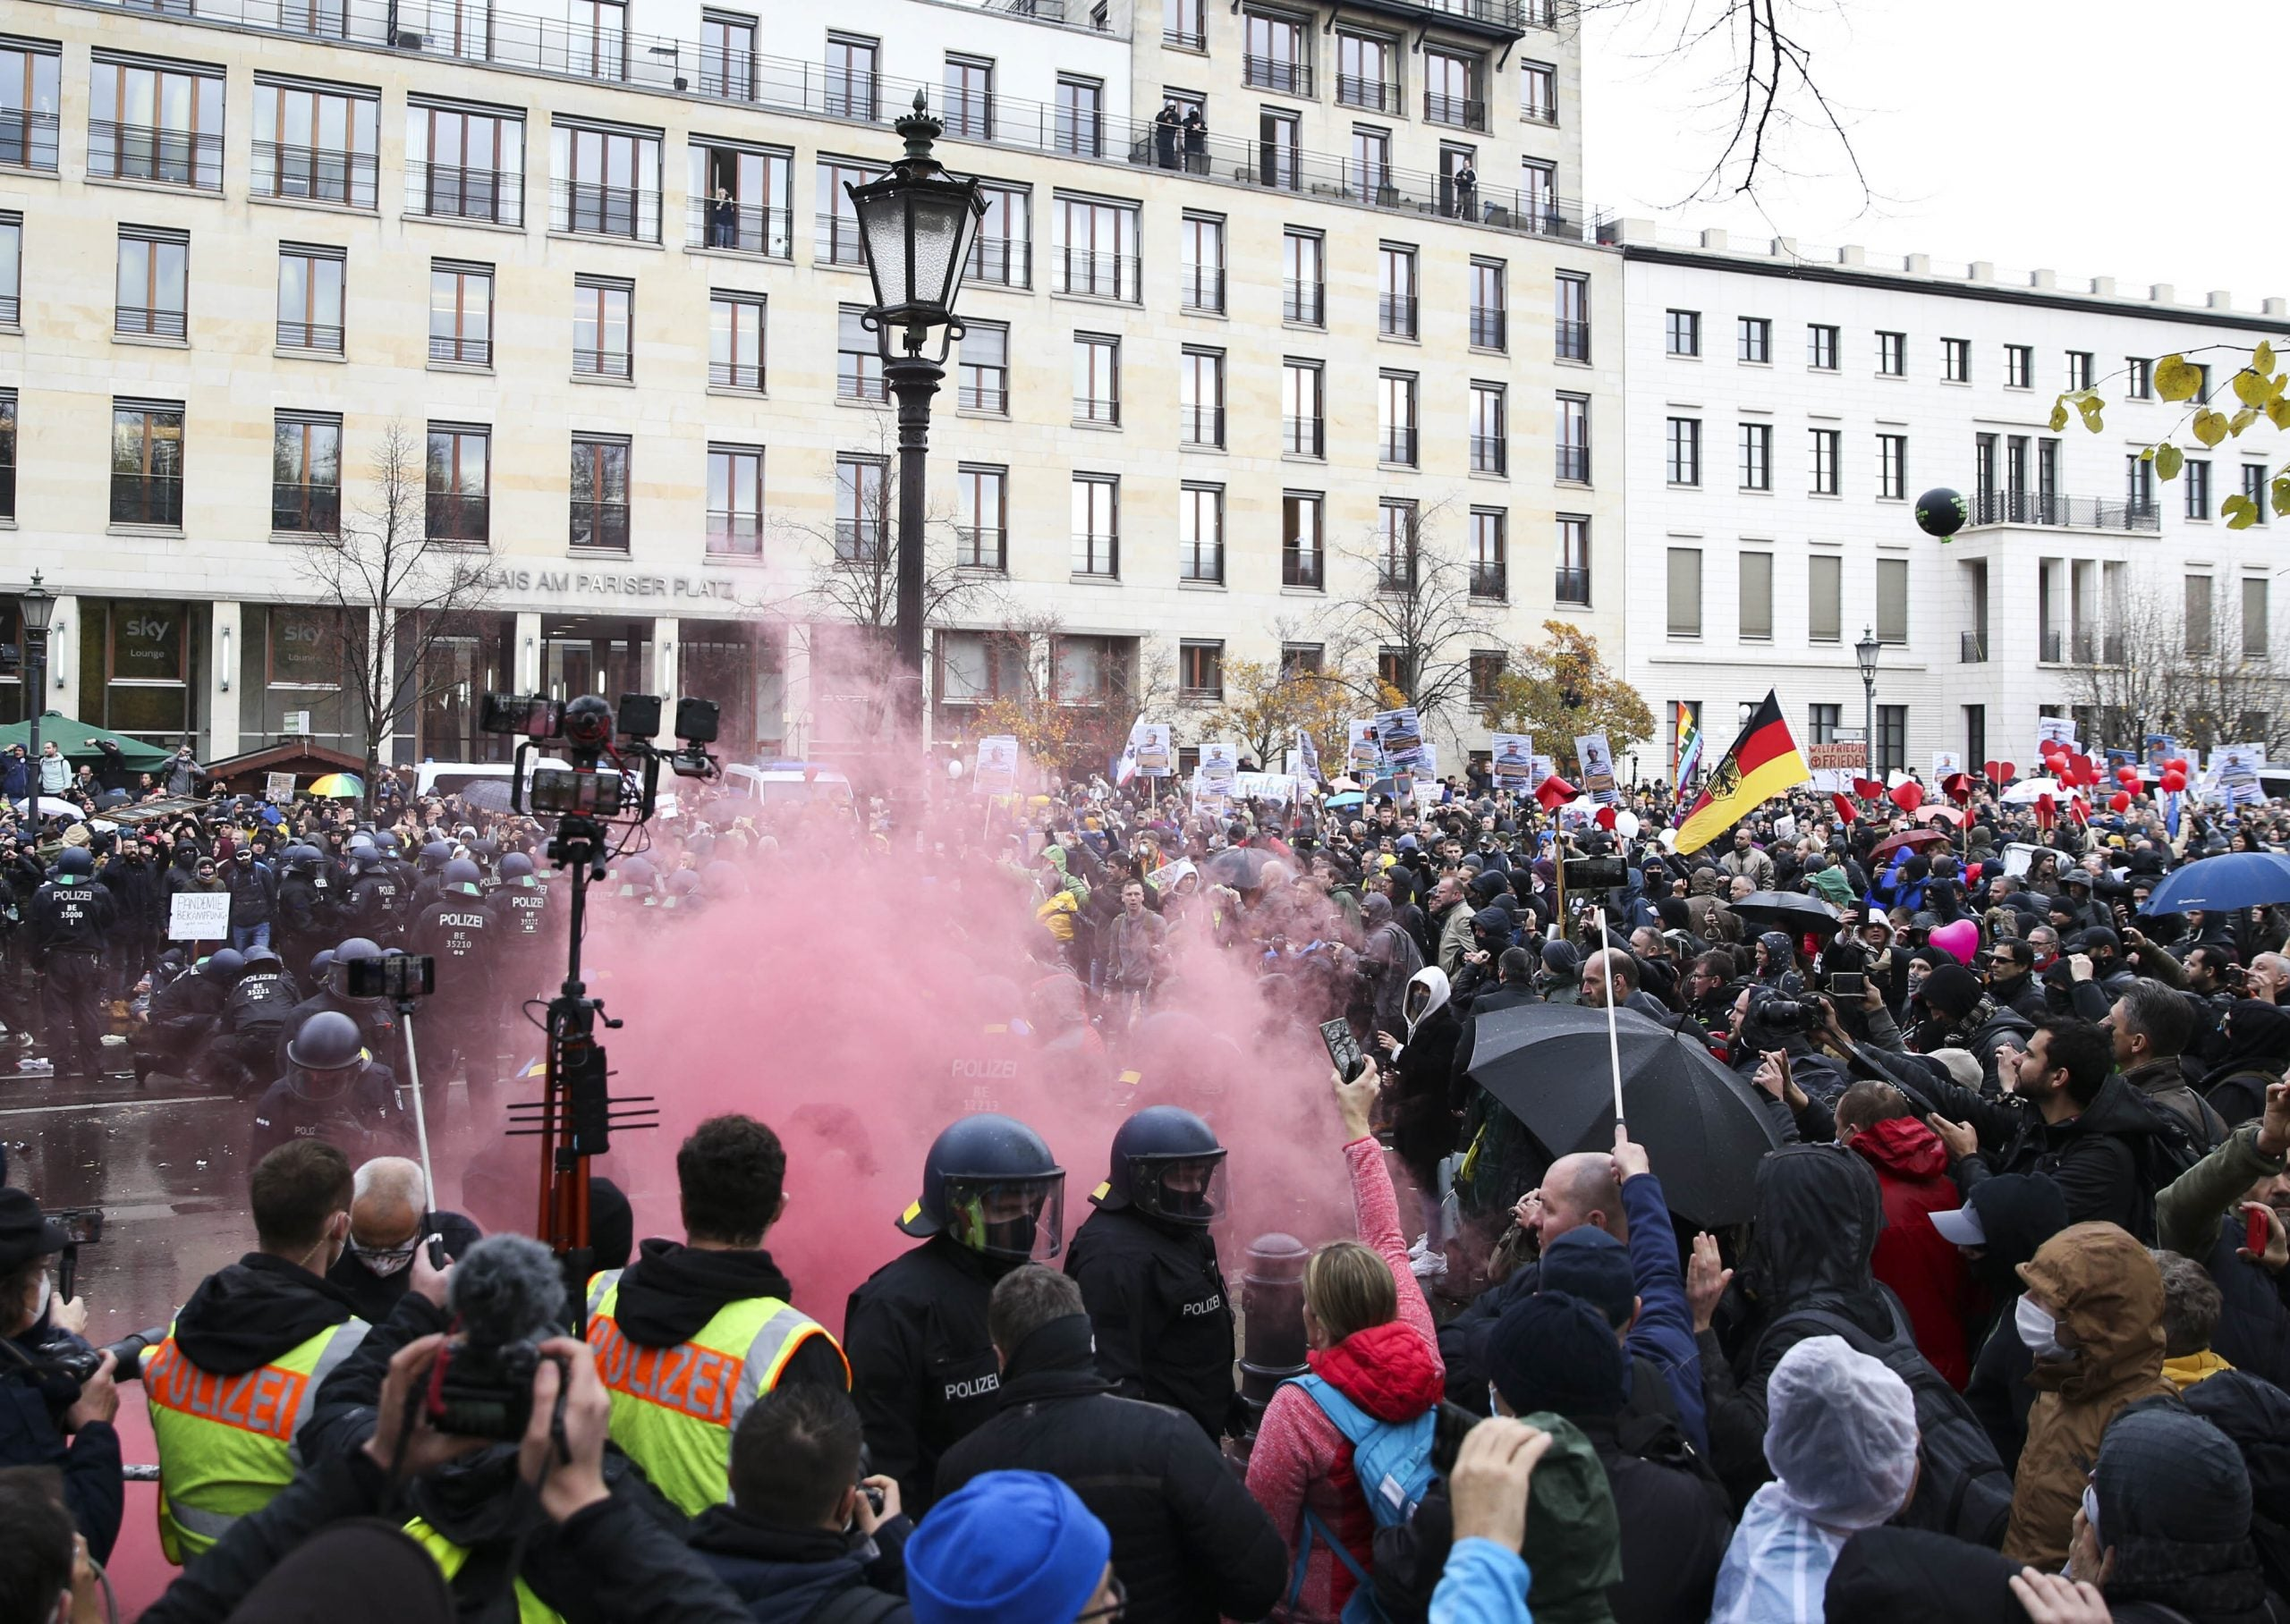 What Germany's anti-lockdown protests reveal about the country